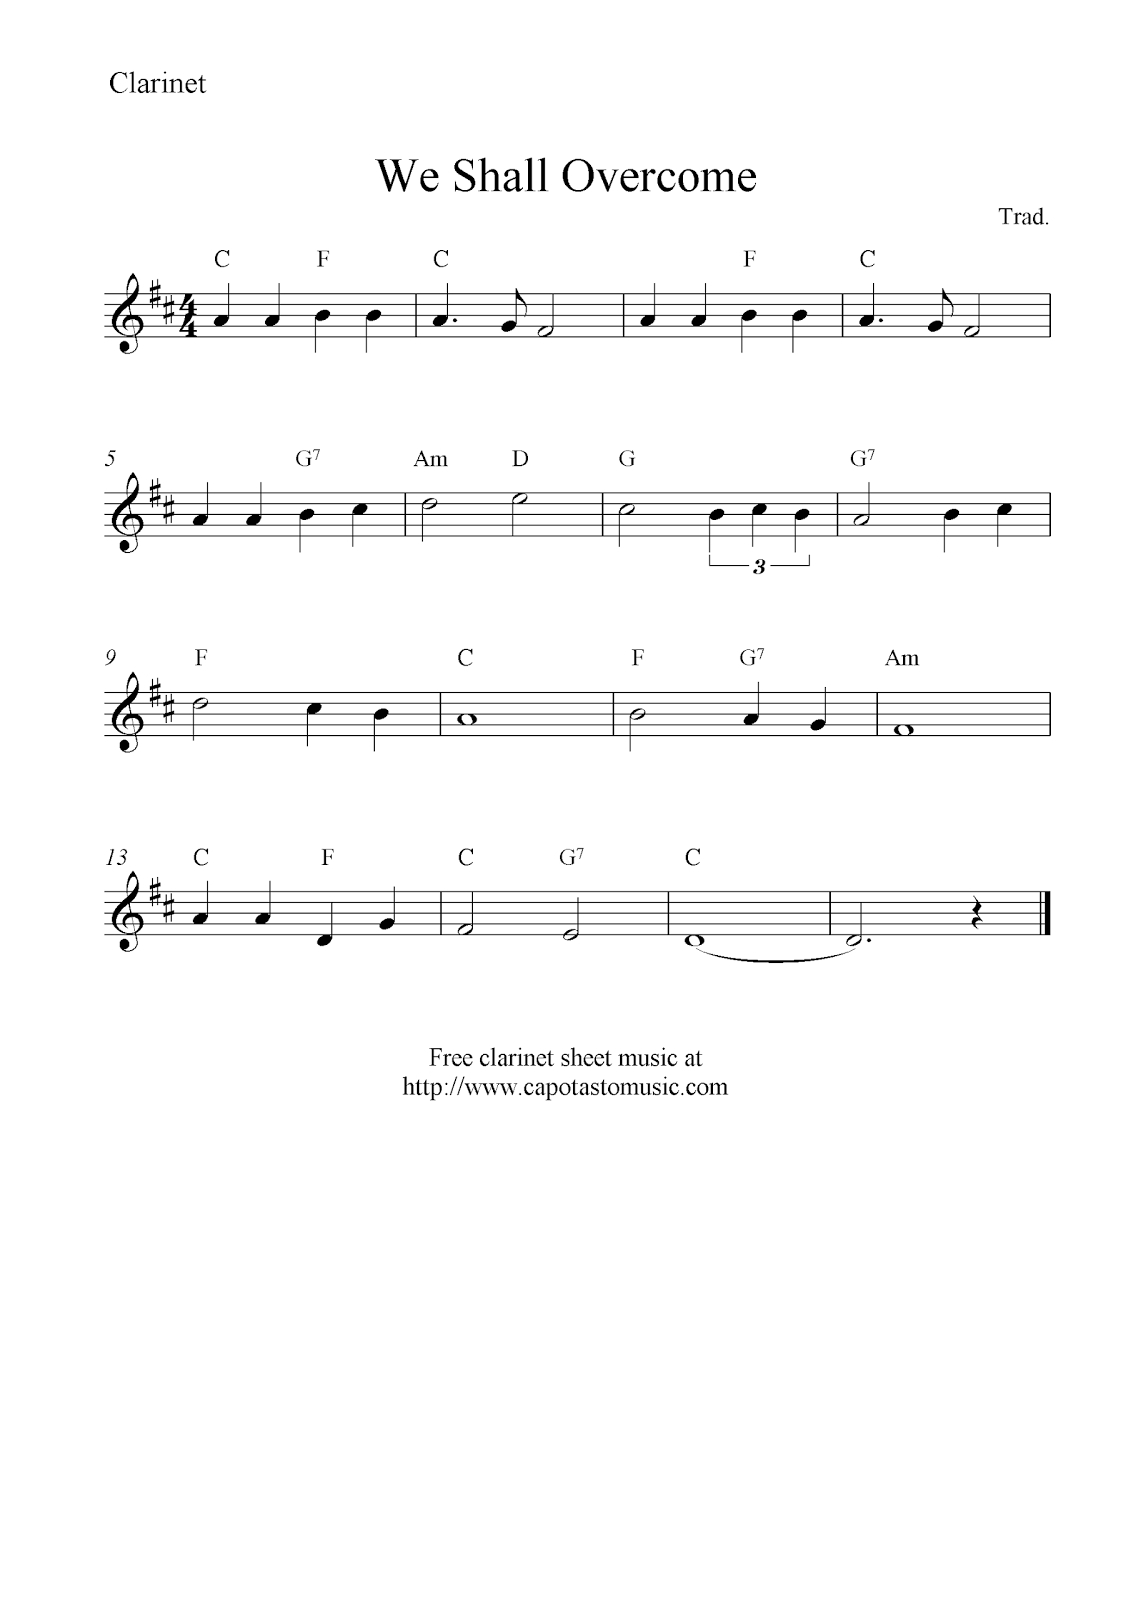 We Shall Overcome, Free Clarinet Sheet Music Notes - Free Sheet Music For Clarinet Printable